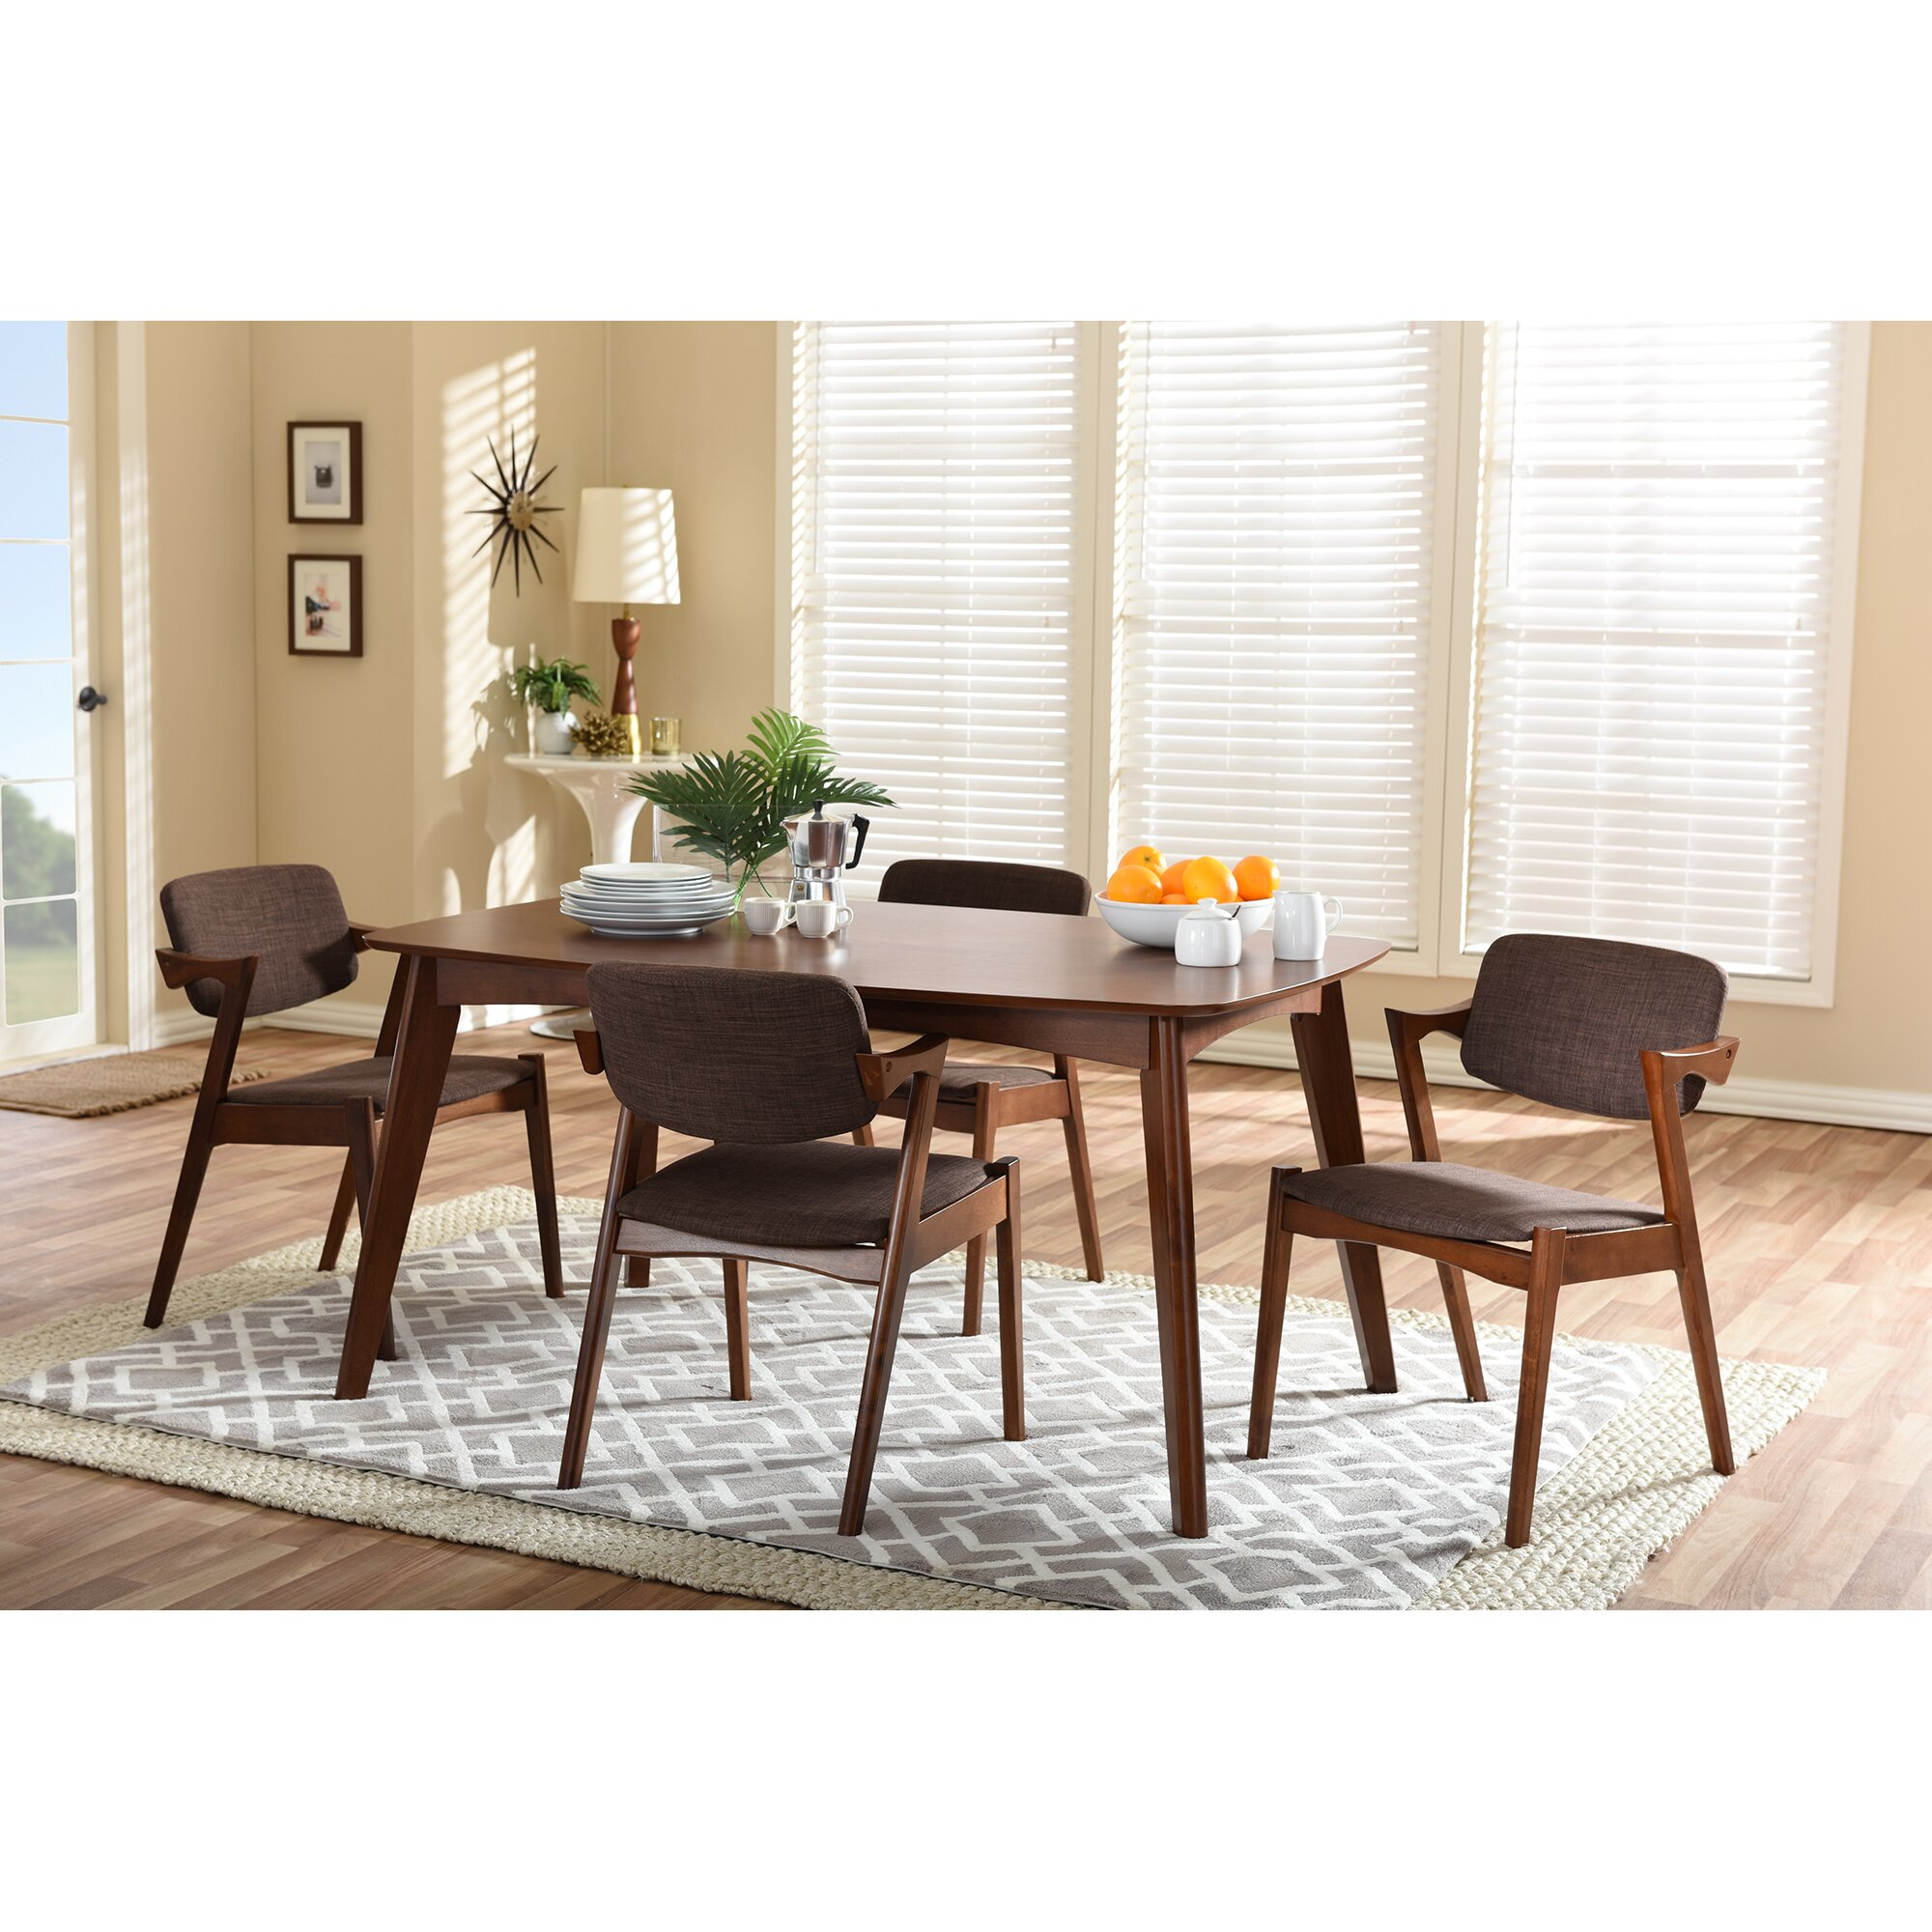 elianna elegant dark walnut upholstered 5 piece dining set f